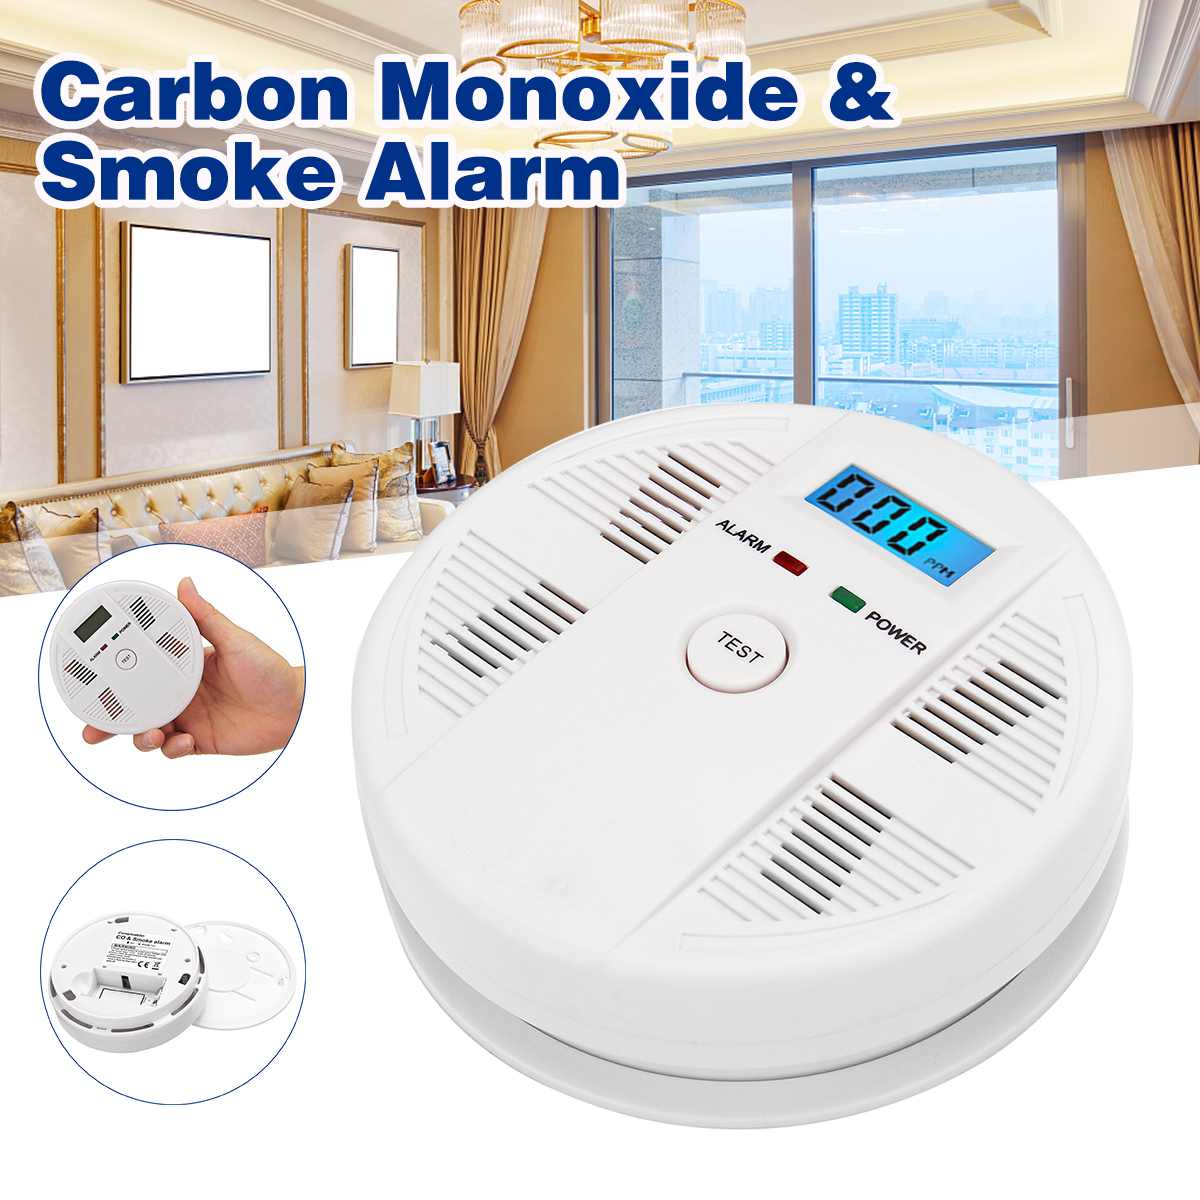 NEW 2 In 1 LCD Display Carbon Monoxide & Smoke Combo Detector Battery Operated CO Alarm With LED Light Flashing Sound Warning